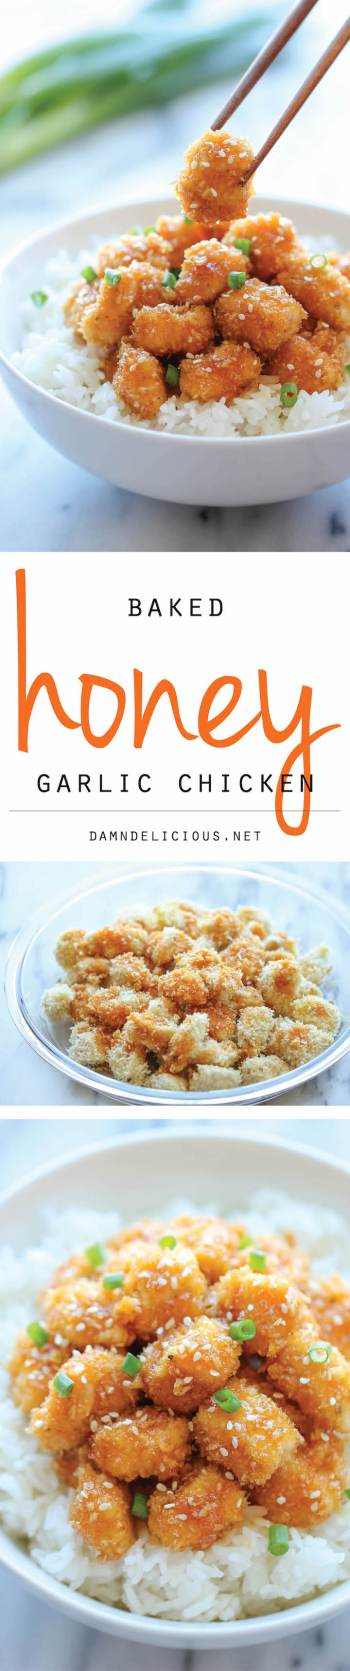 Baked-Honey-Garlic-Chicken.jpg